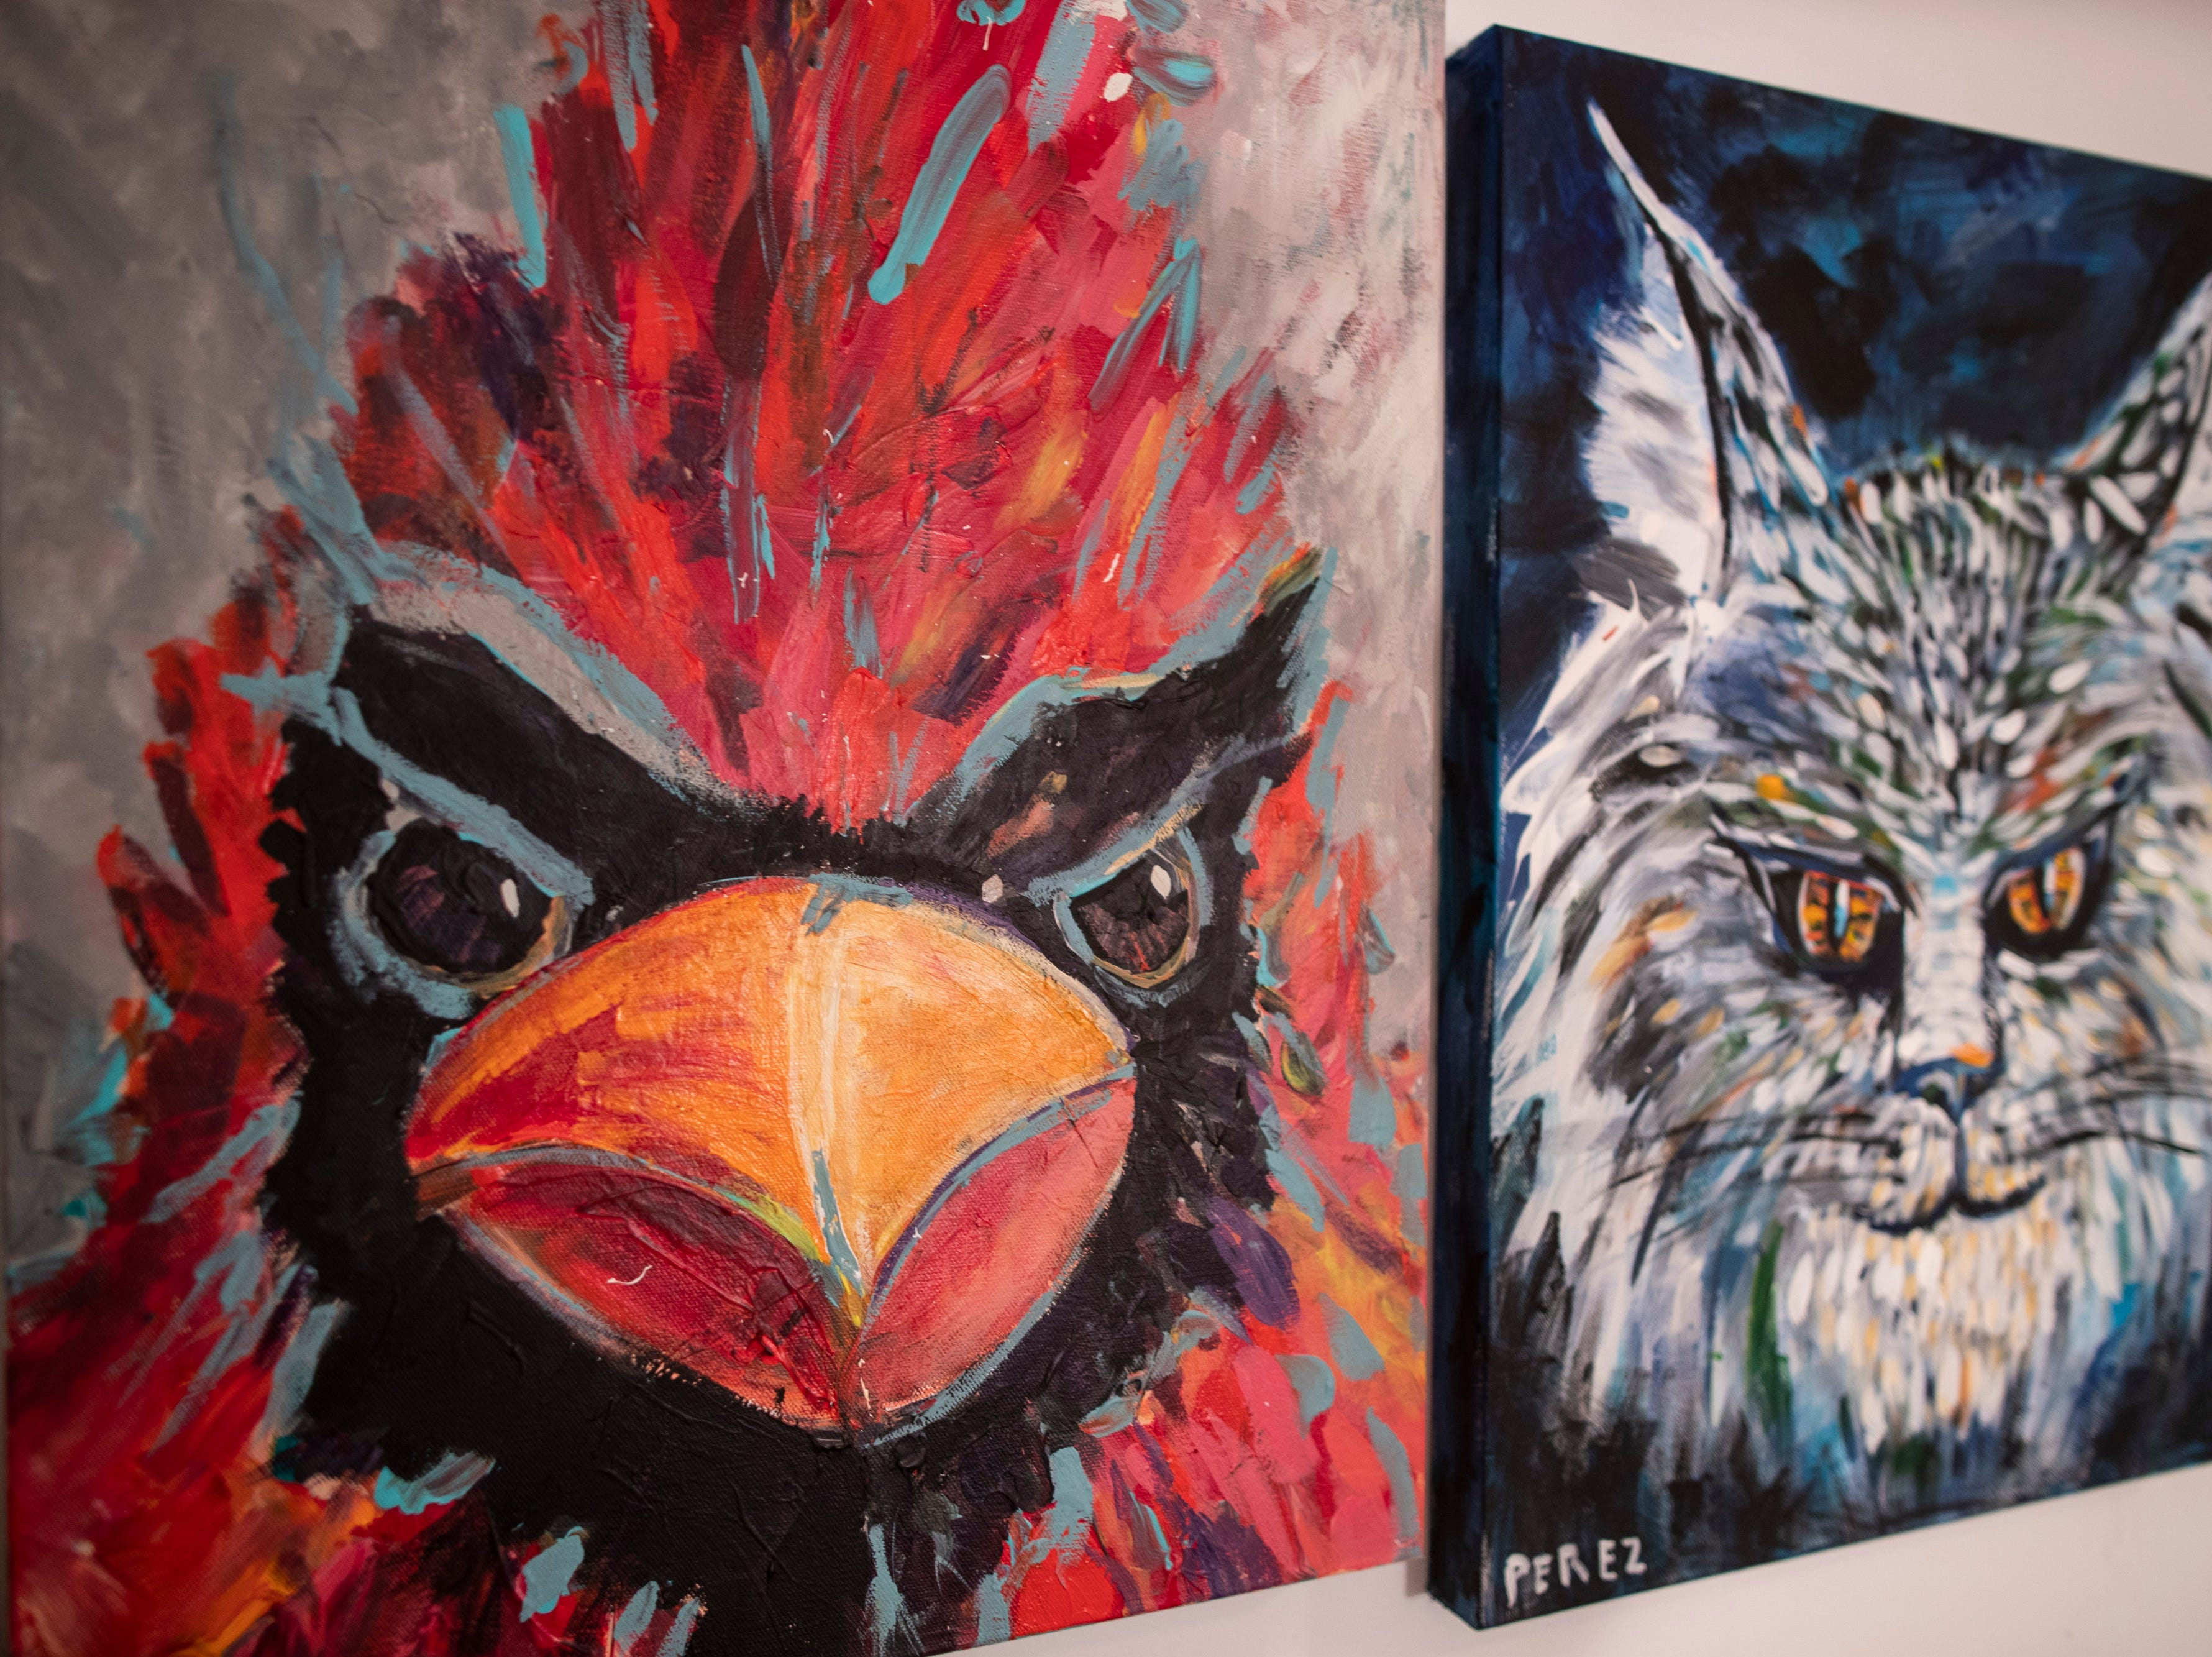 A portrait of a cardinal and a wildcat in the home studio of Louisville artist Andy Perez. March 11, 2019